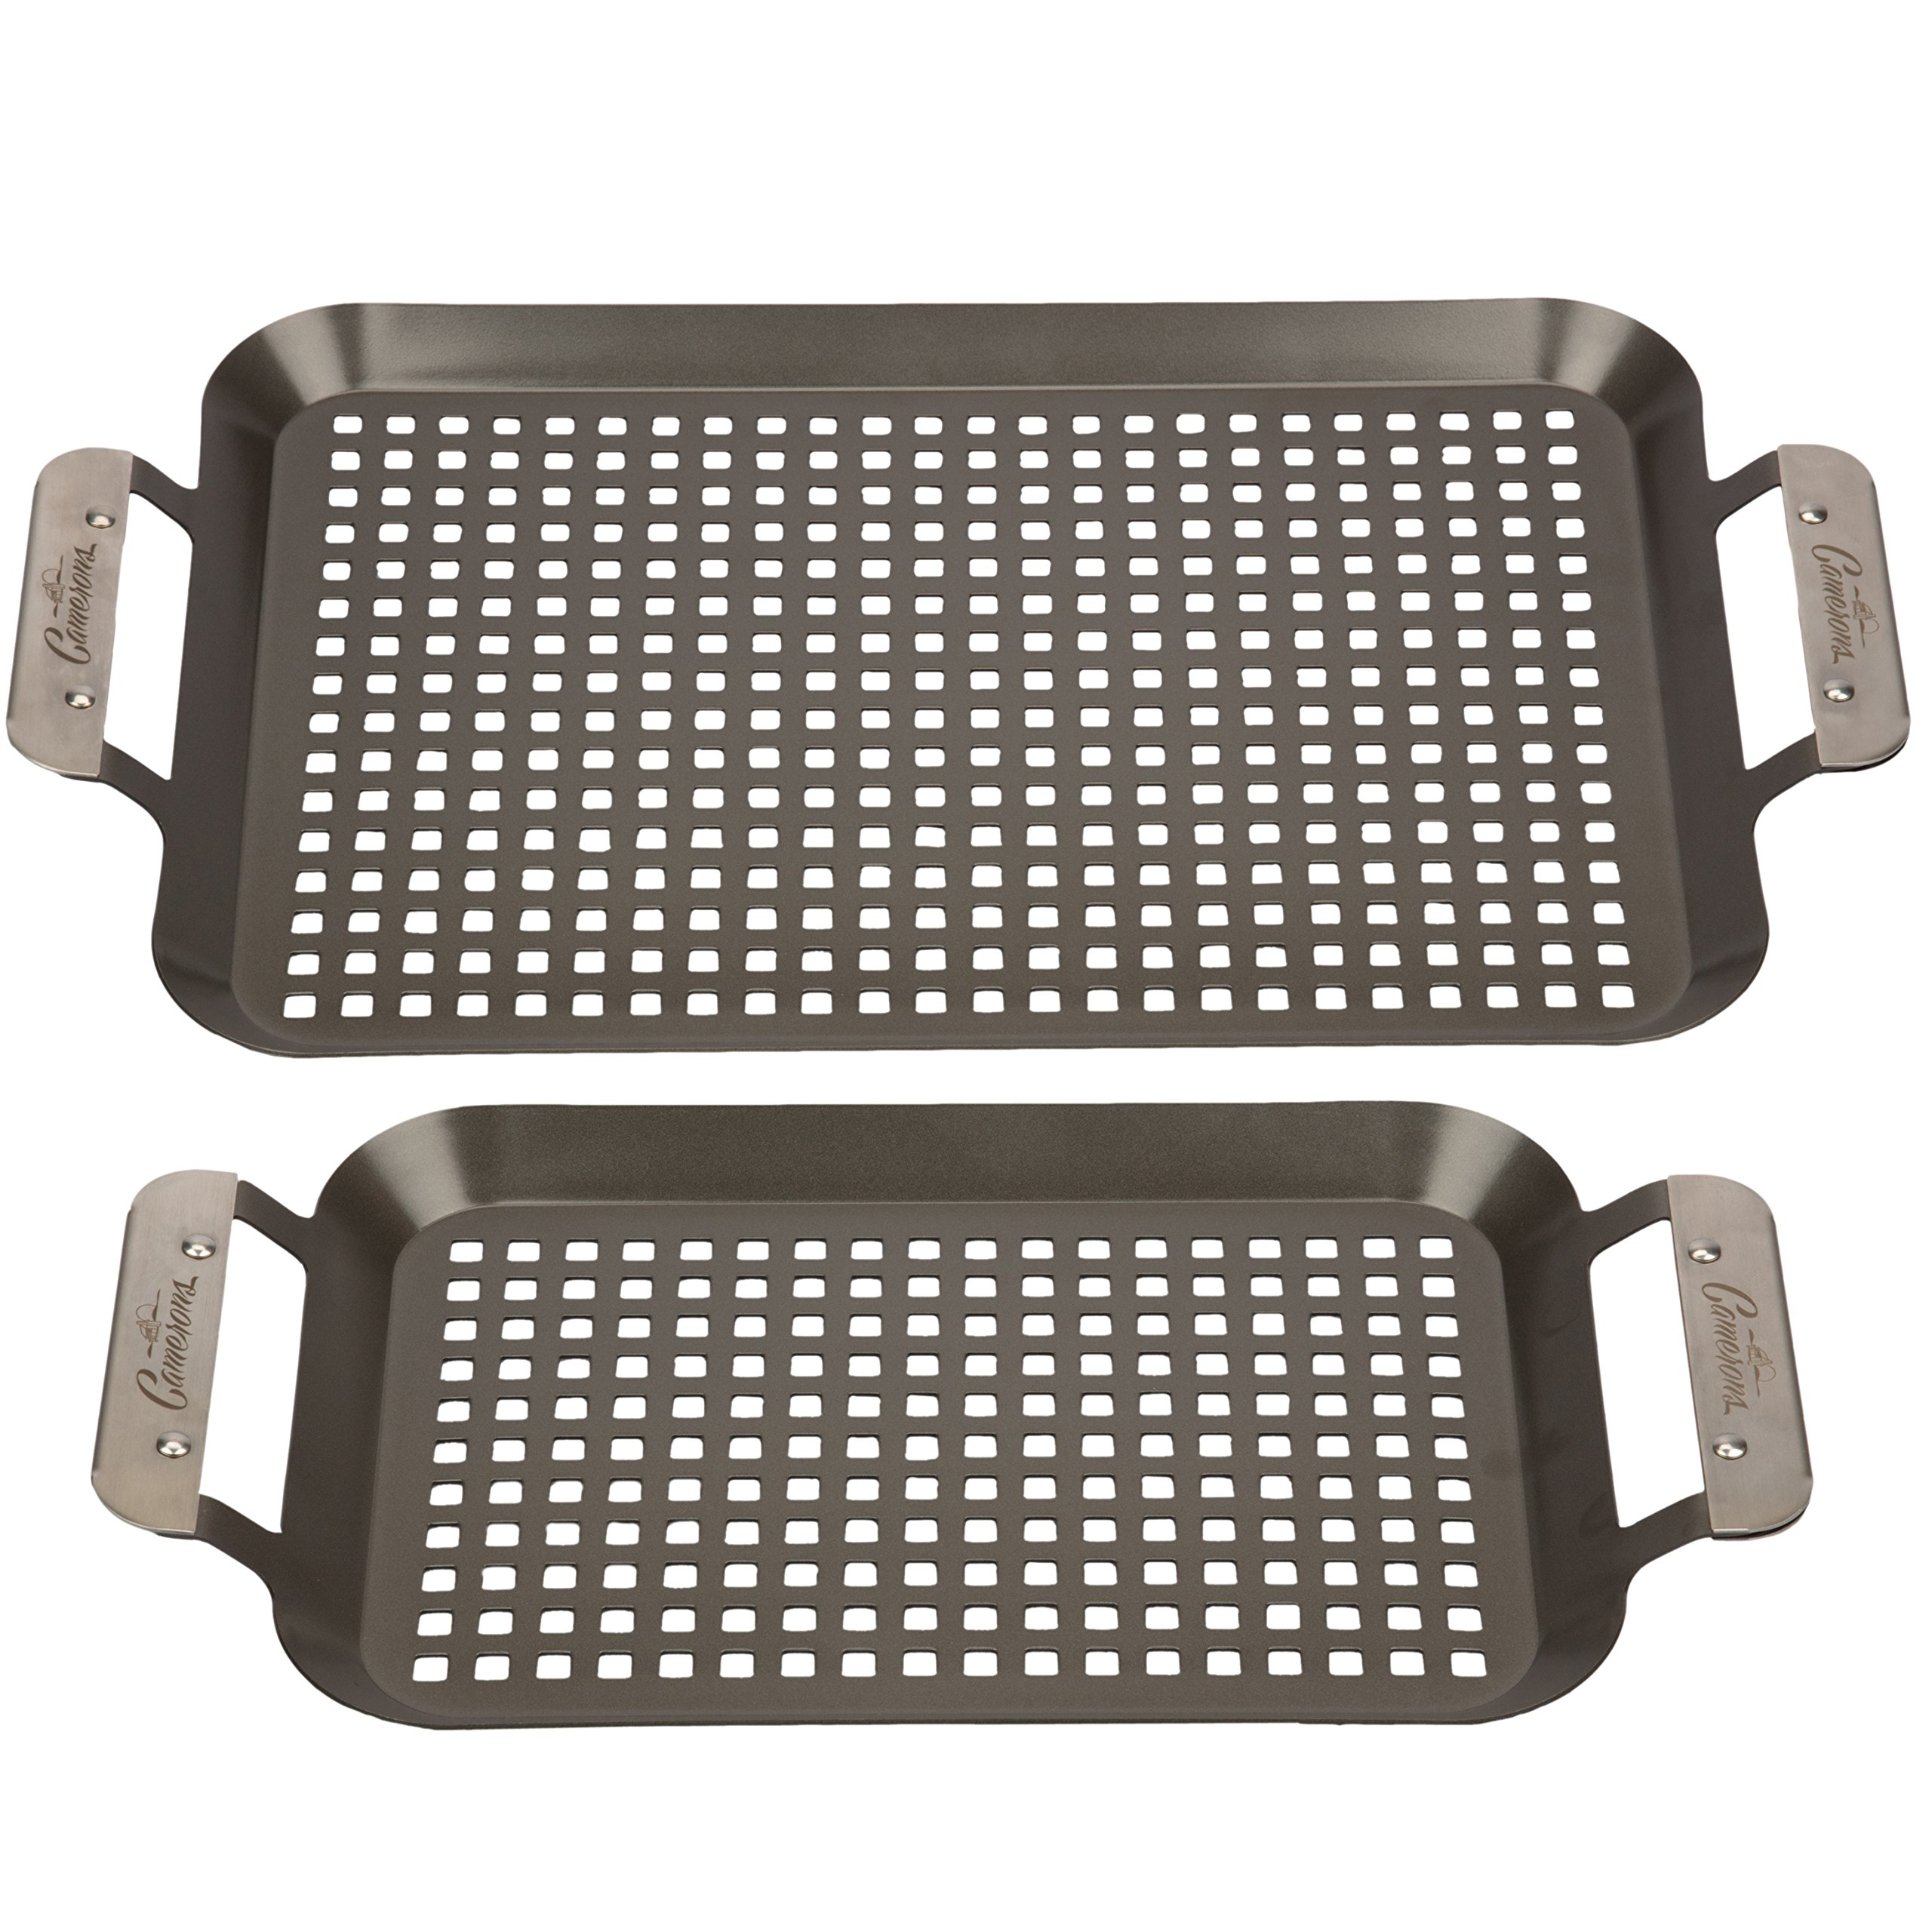 Grill Topper BBQ Grilling Pans (Set of 2) - Non-Stick Barbecue Trays w Stainless Steel Handles for Meat, Vegetables, and Seafood